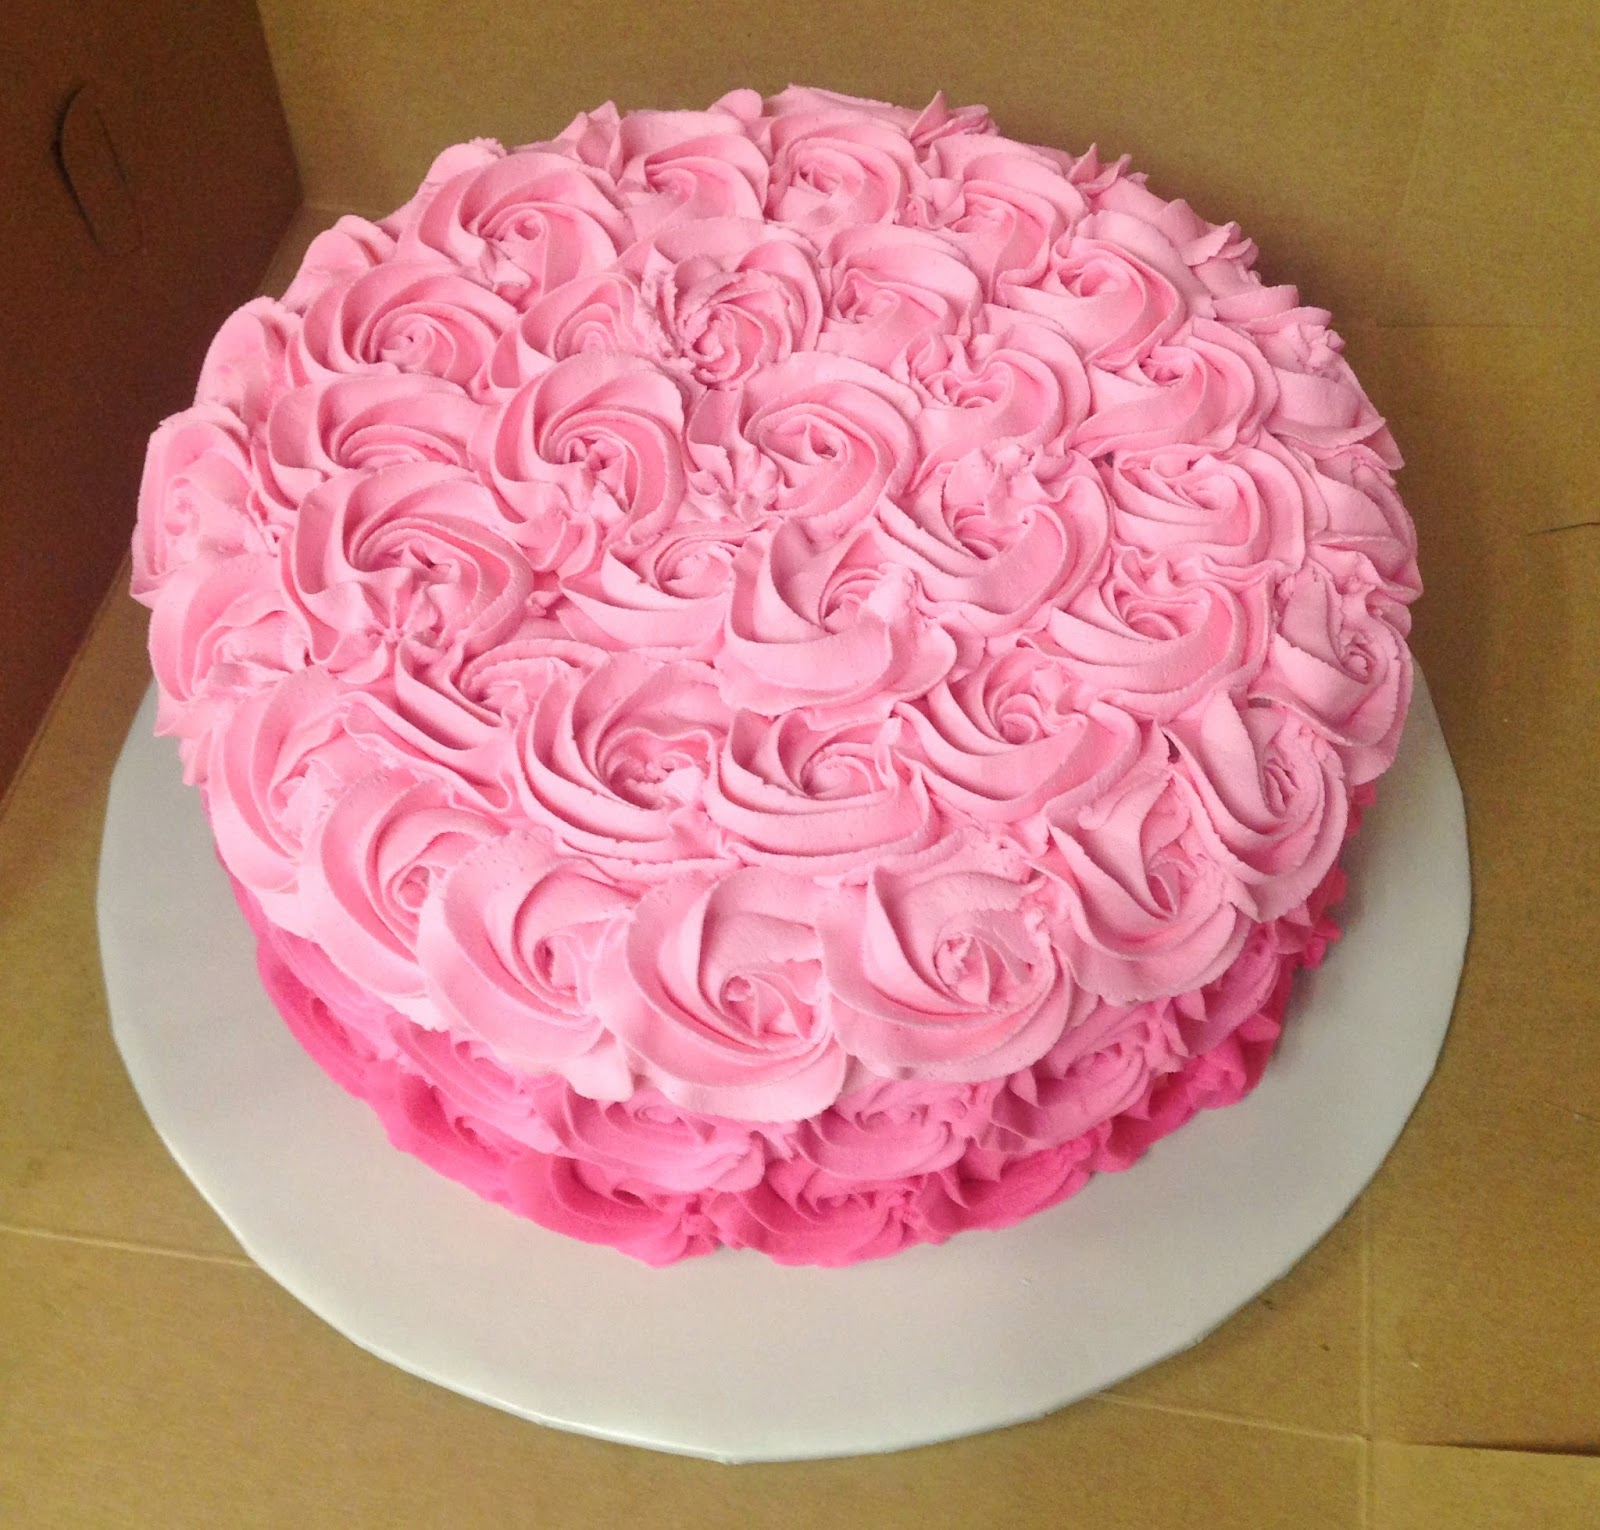 Pink Rosette Cake Images : Cakes by Mindy: Pink Ombre Rosette Cake 10